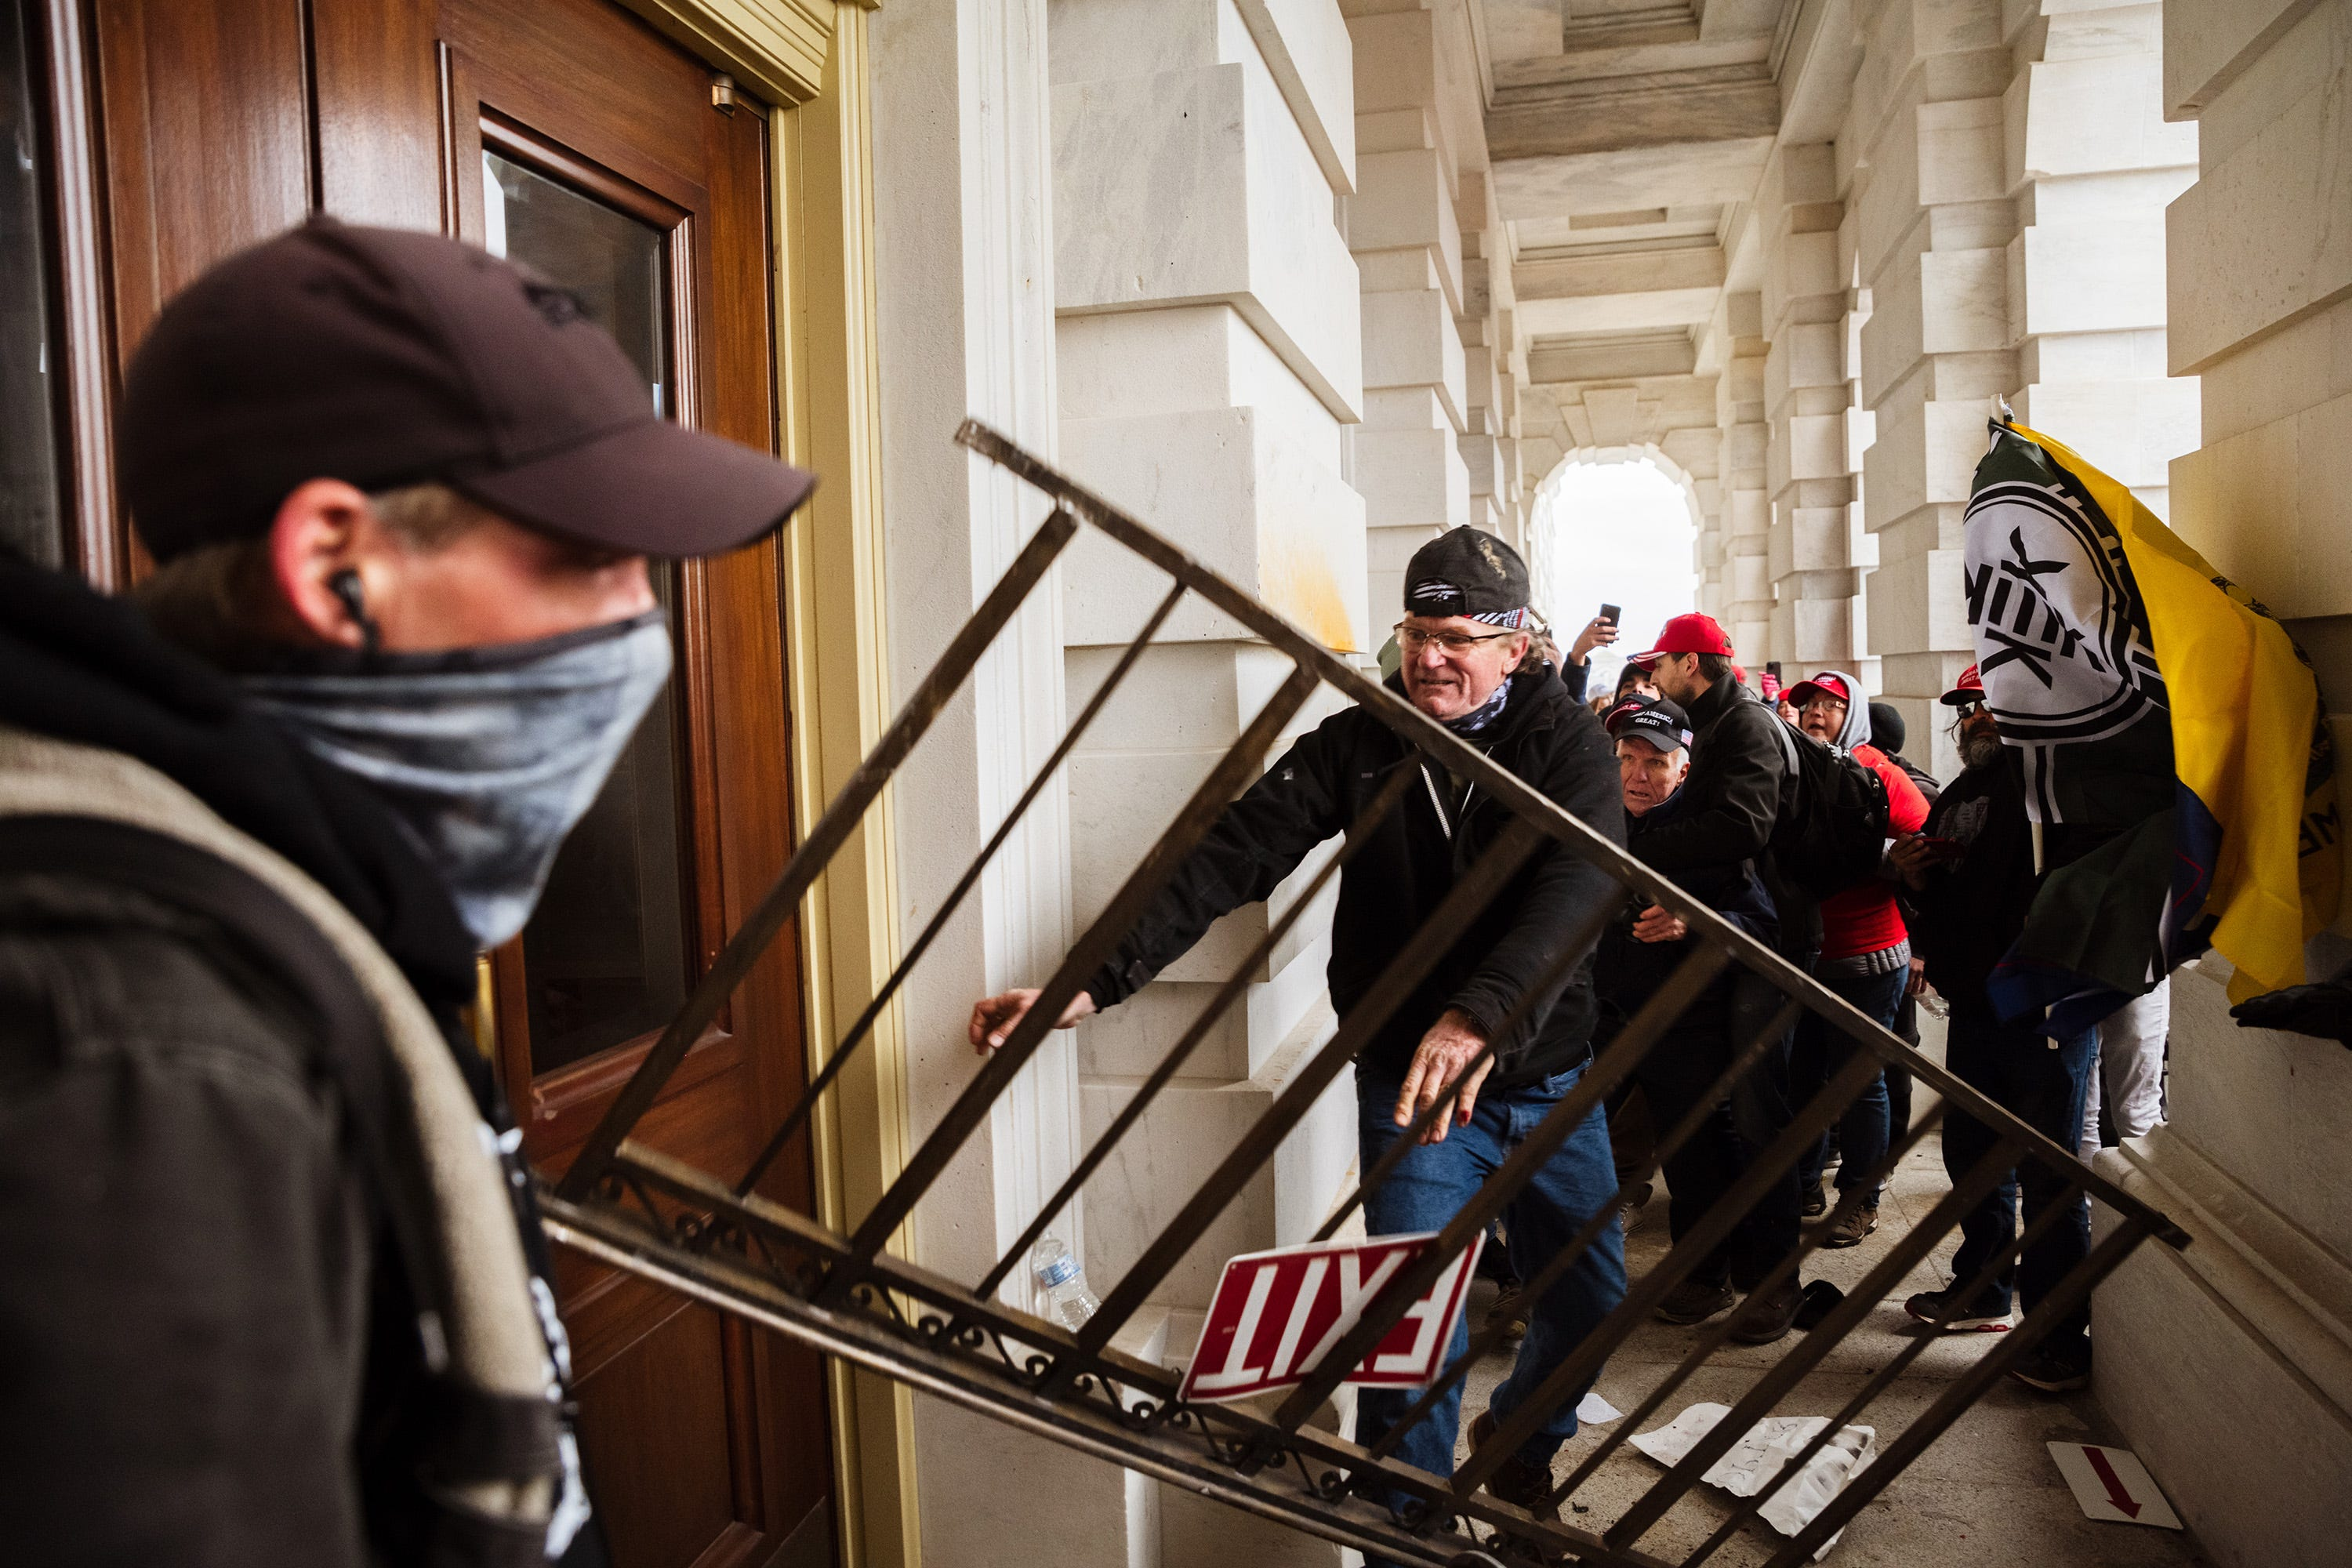 A rioter uses railing to bash a door at the Capitol as others stand by filming his attempt to gain access to the building.